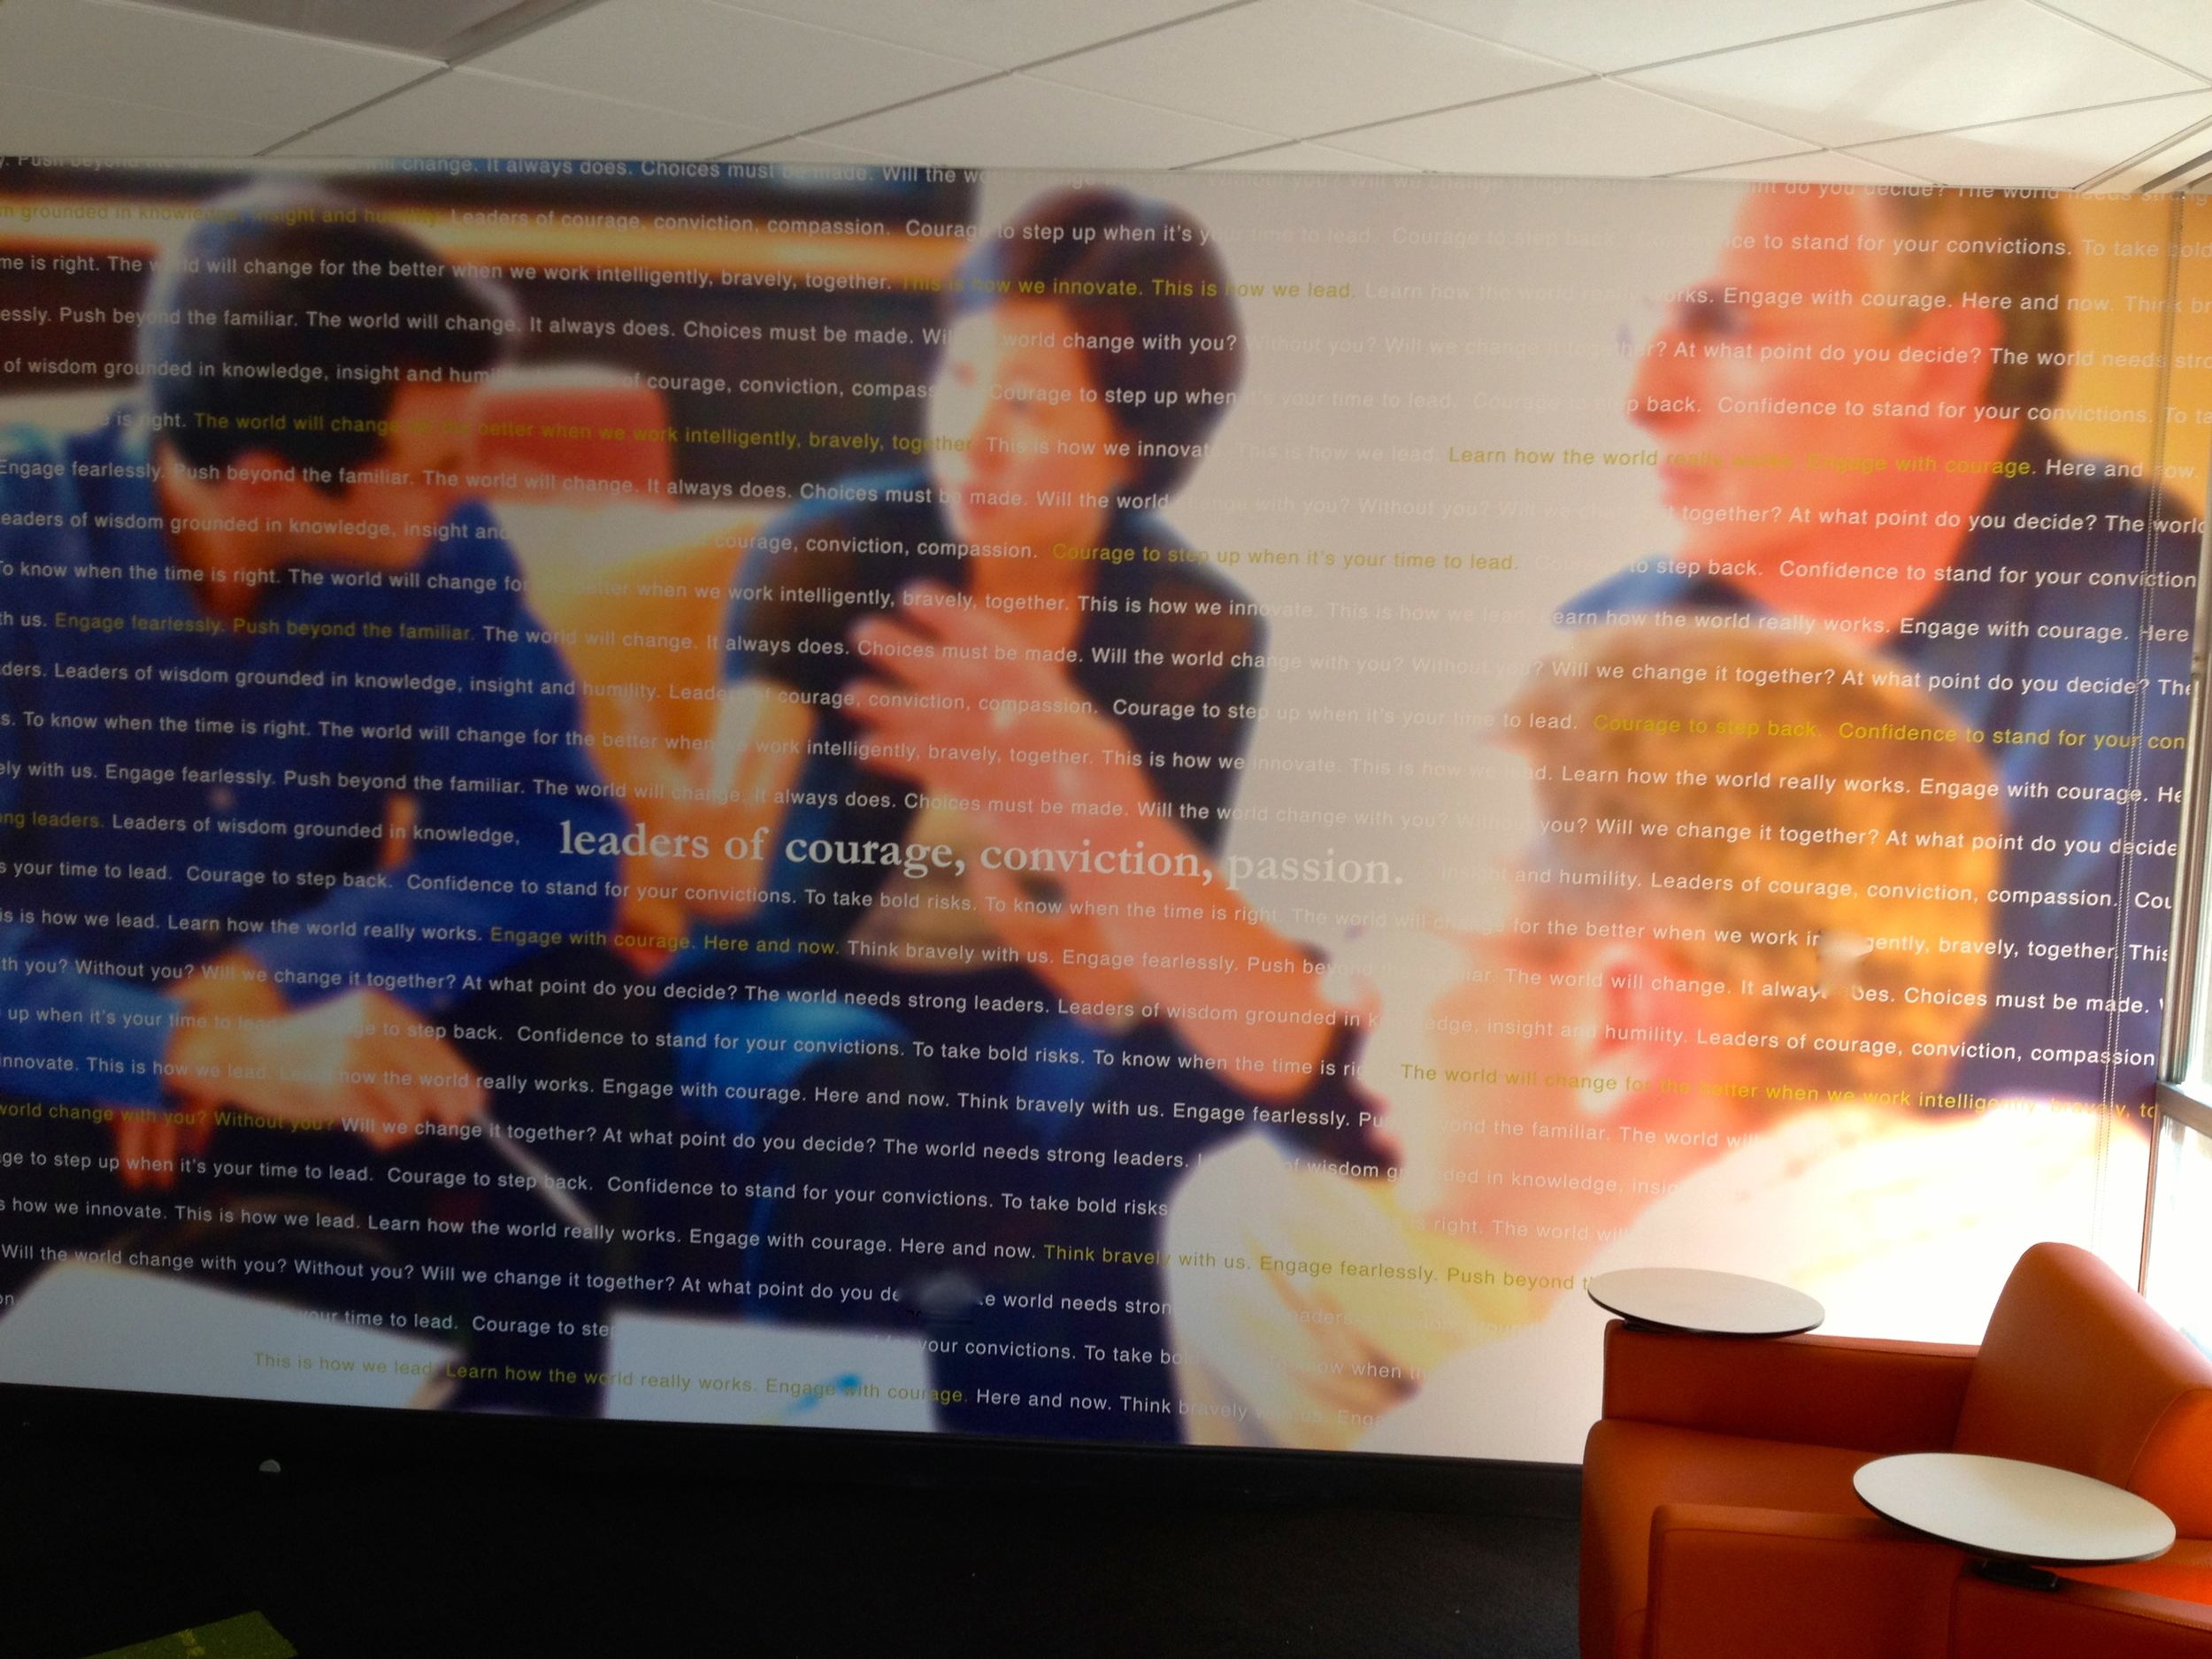 Custom-printed wallcoverings, vinyl copy, and installation by Ndio. Design by Perkins+Will.